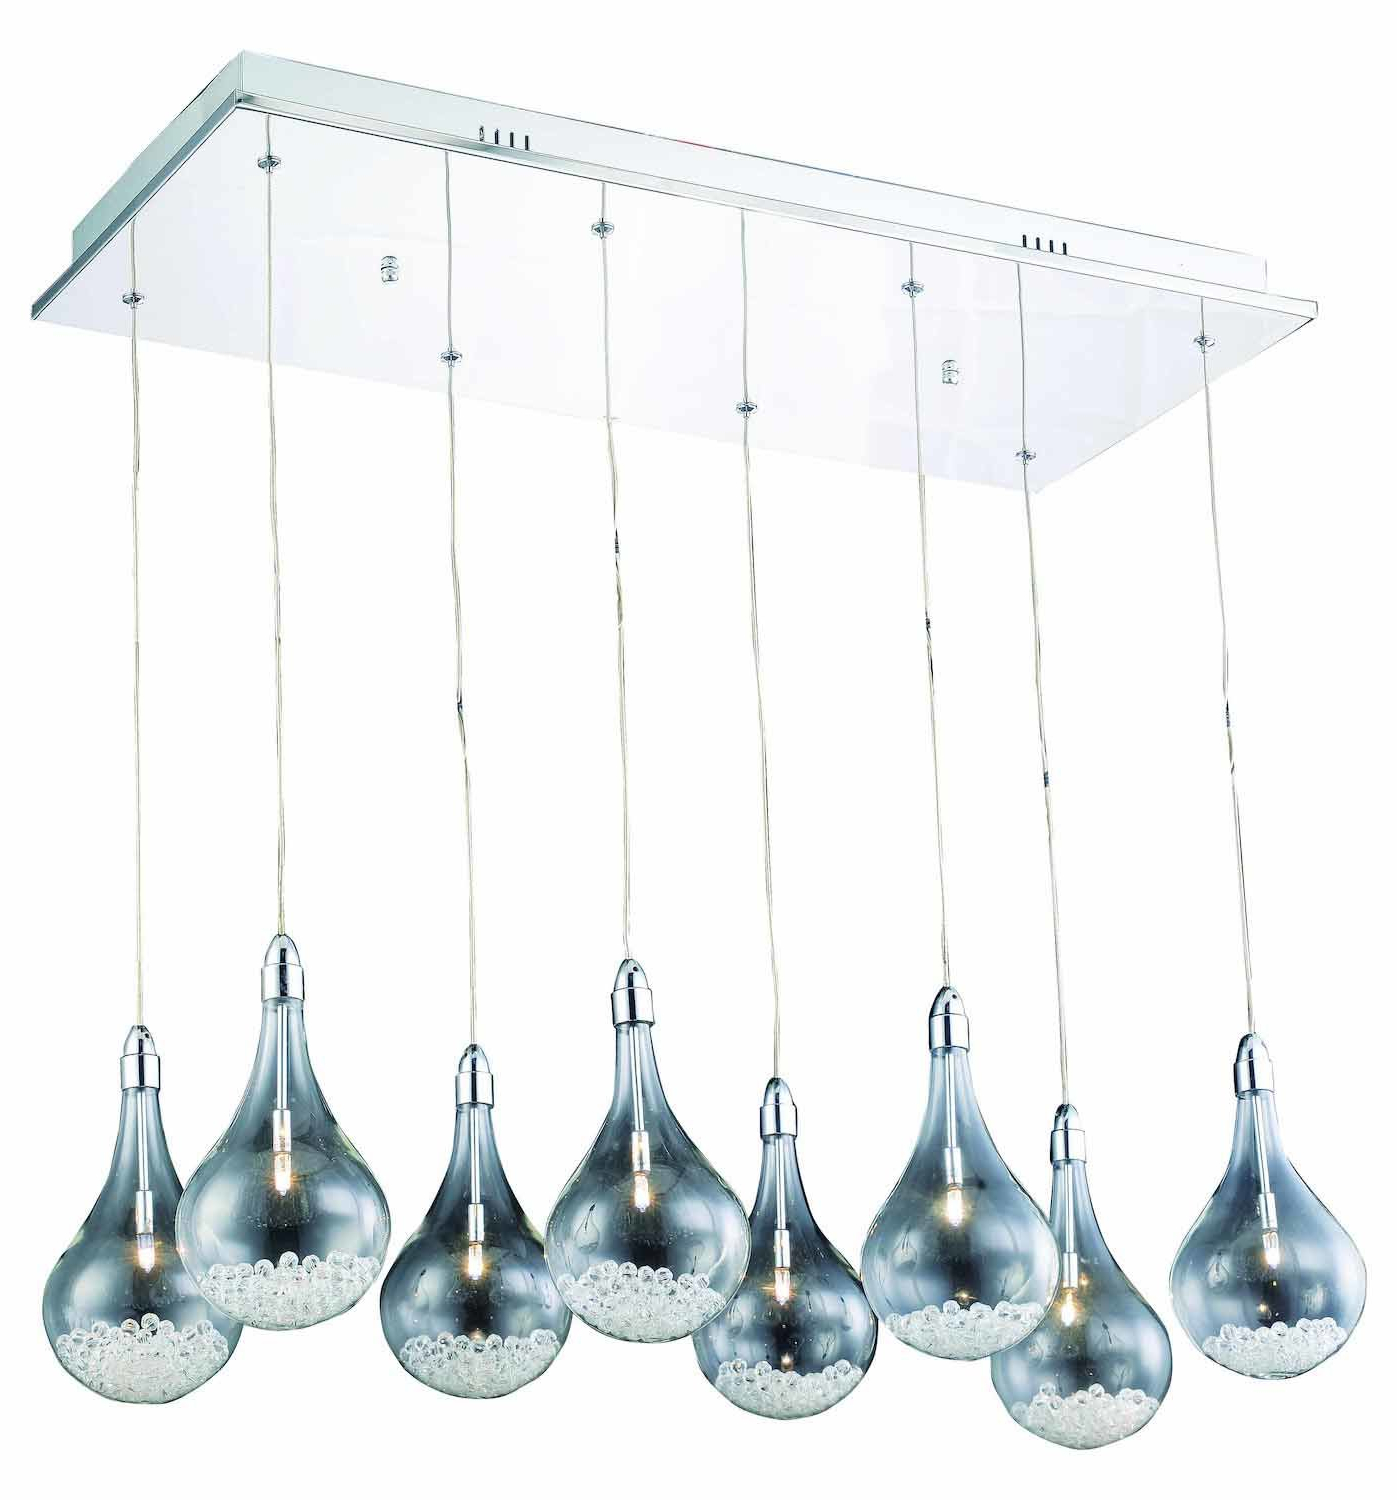 Well Known Neal 9 Light Kitchen Island Teardrop Pendants Regarding Ernie 8 Light Kitchen Island Teardrop Pendant (View 19 of 25)